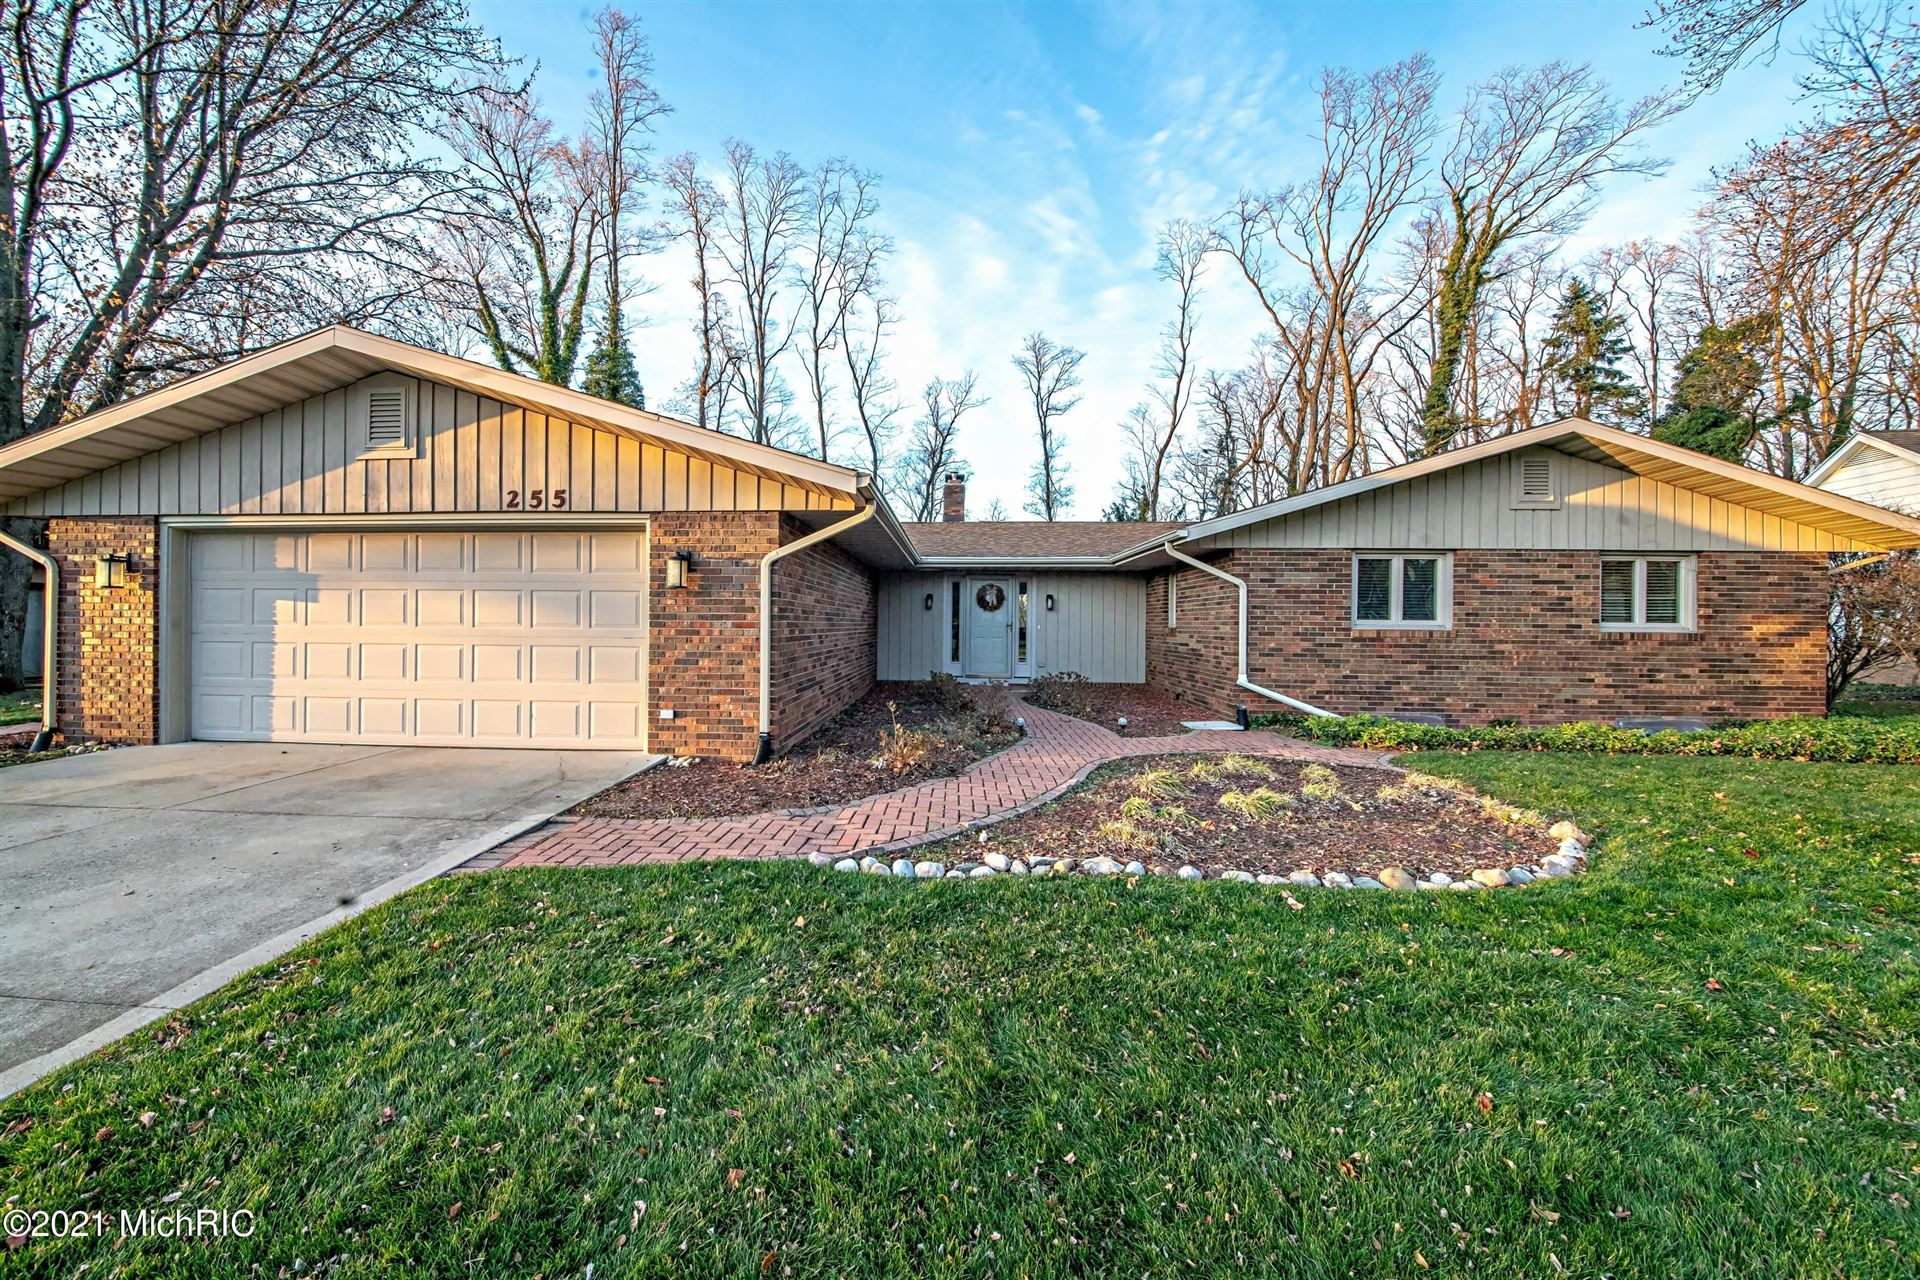 255 N Bluffwood Terrace, Saint Joseph, MI 49085 - MLS#: 21000177